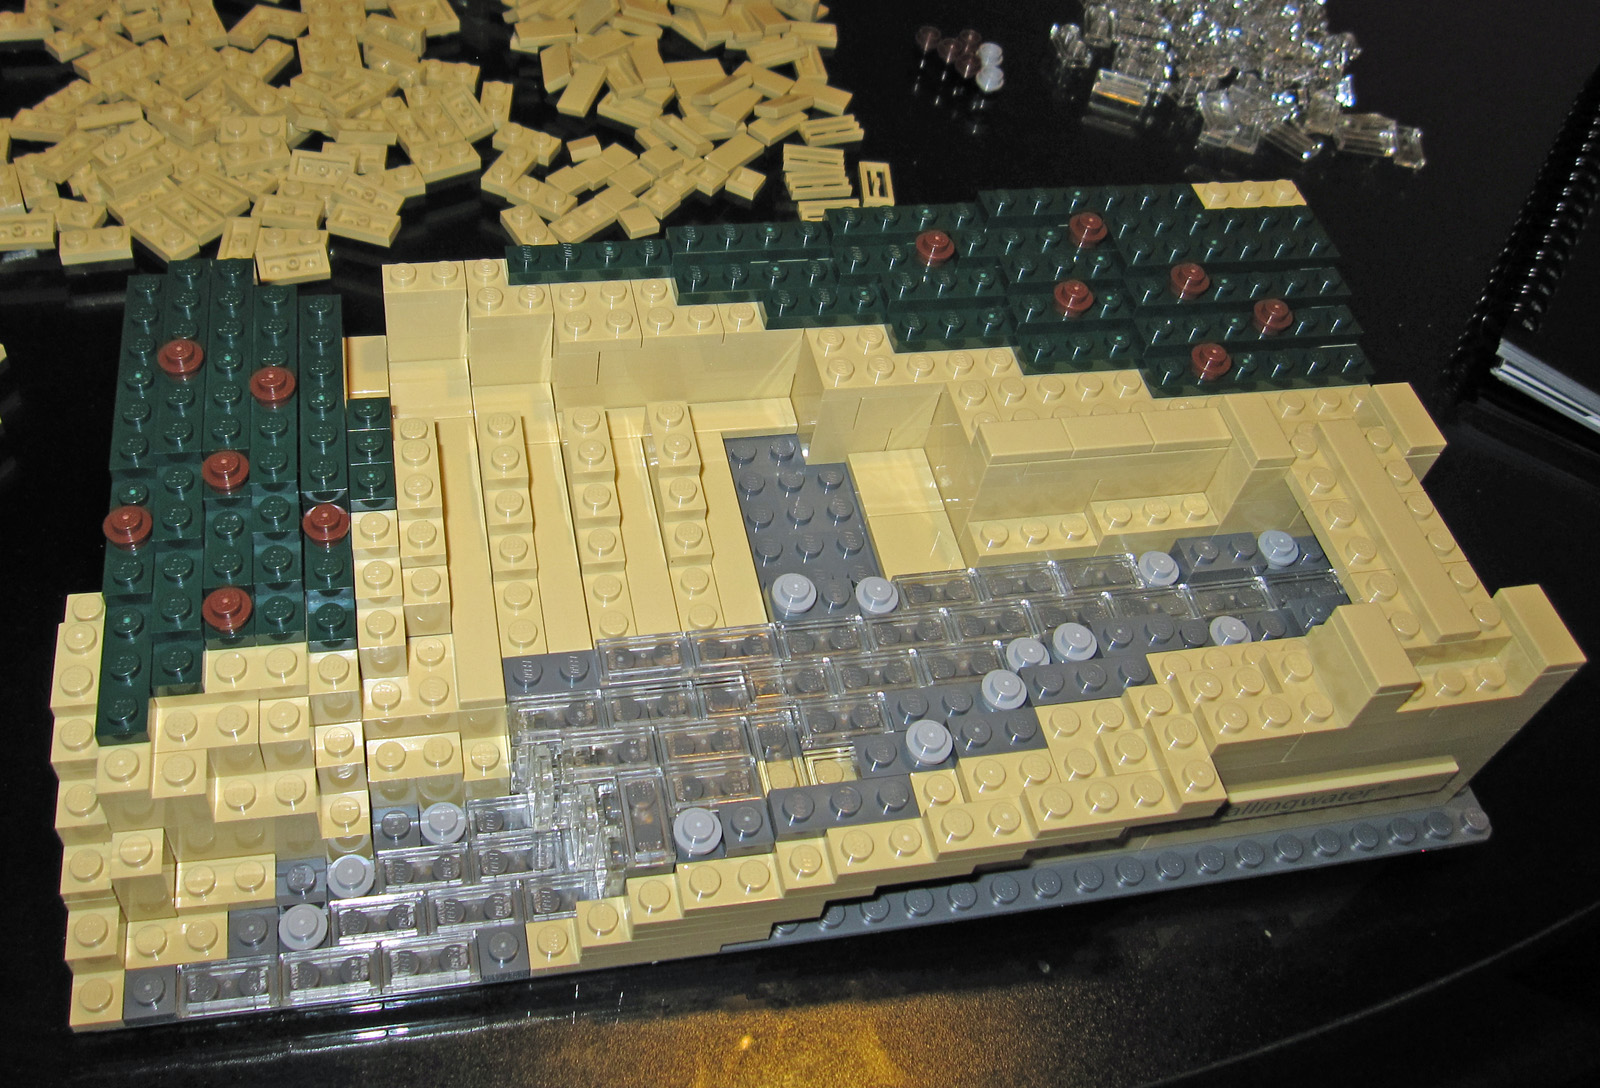 Falling water lego architecture images - Lego falling waters ...